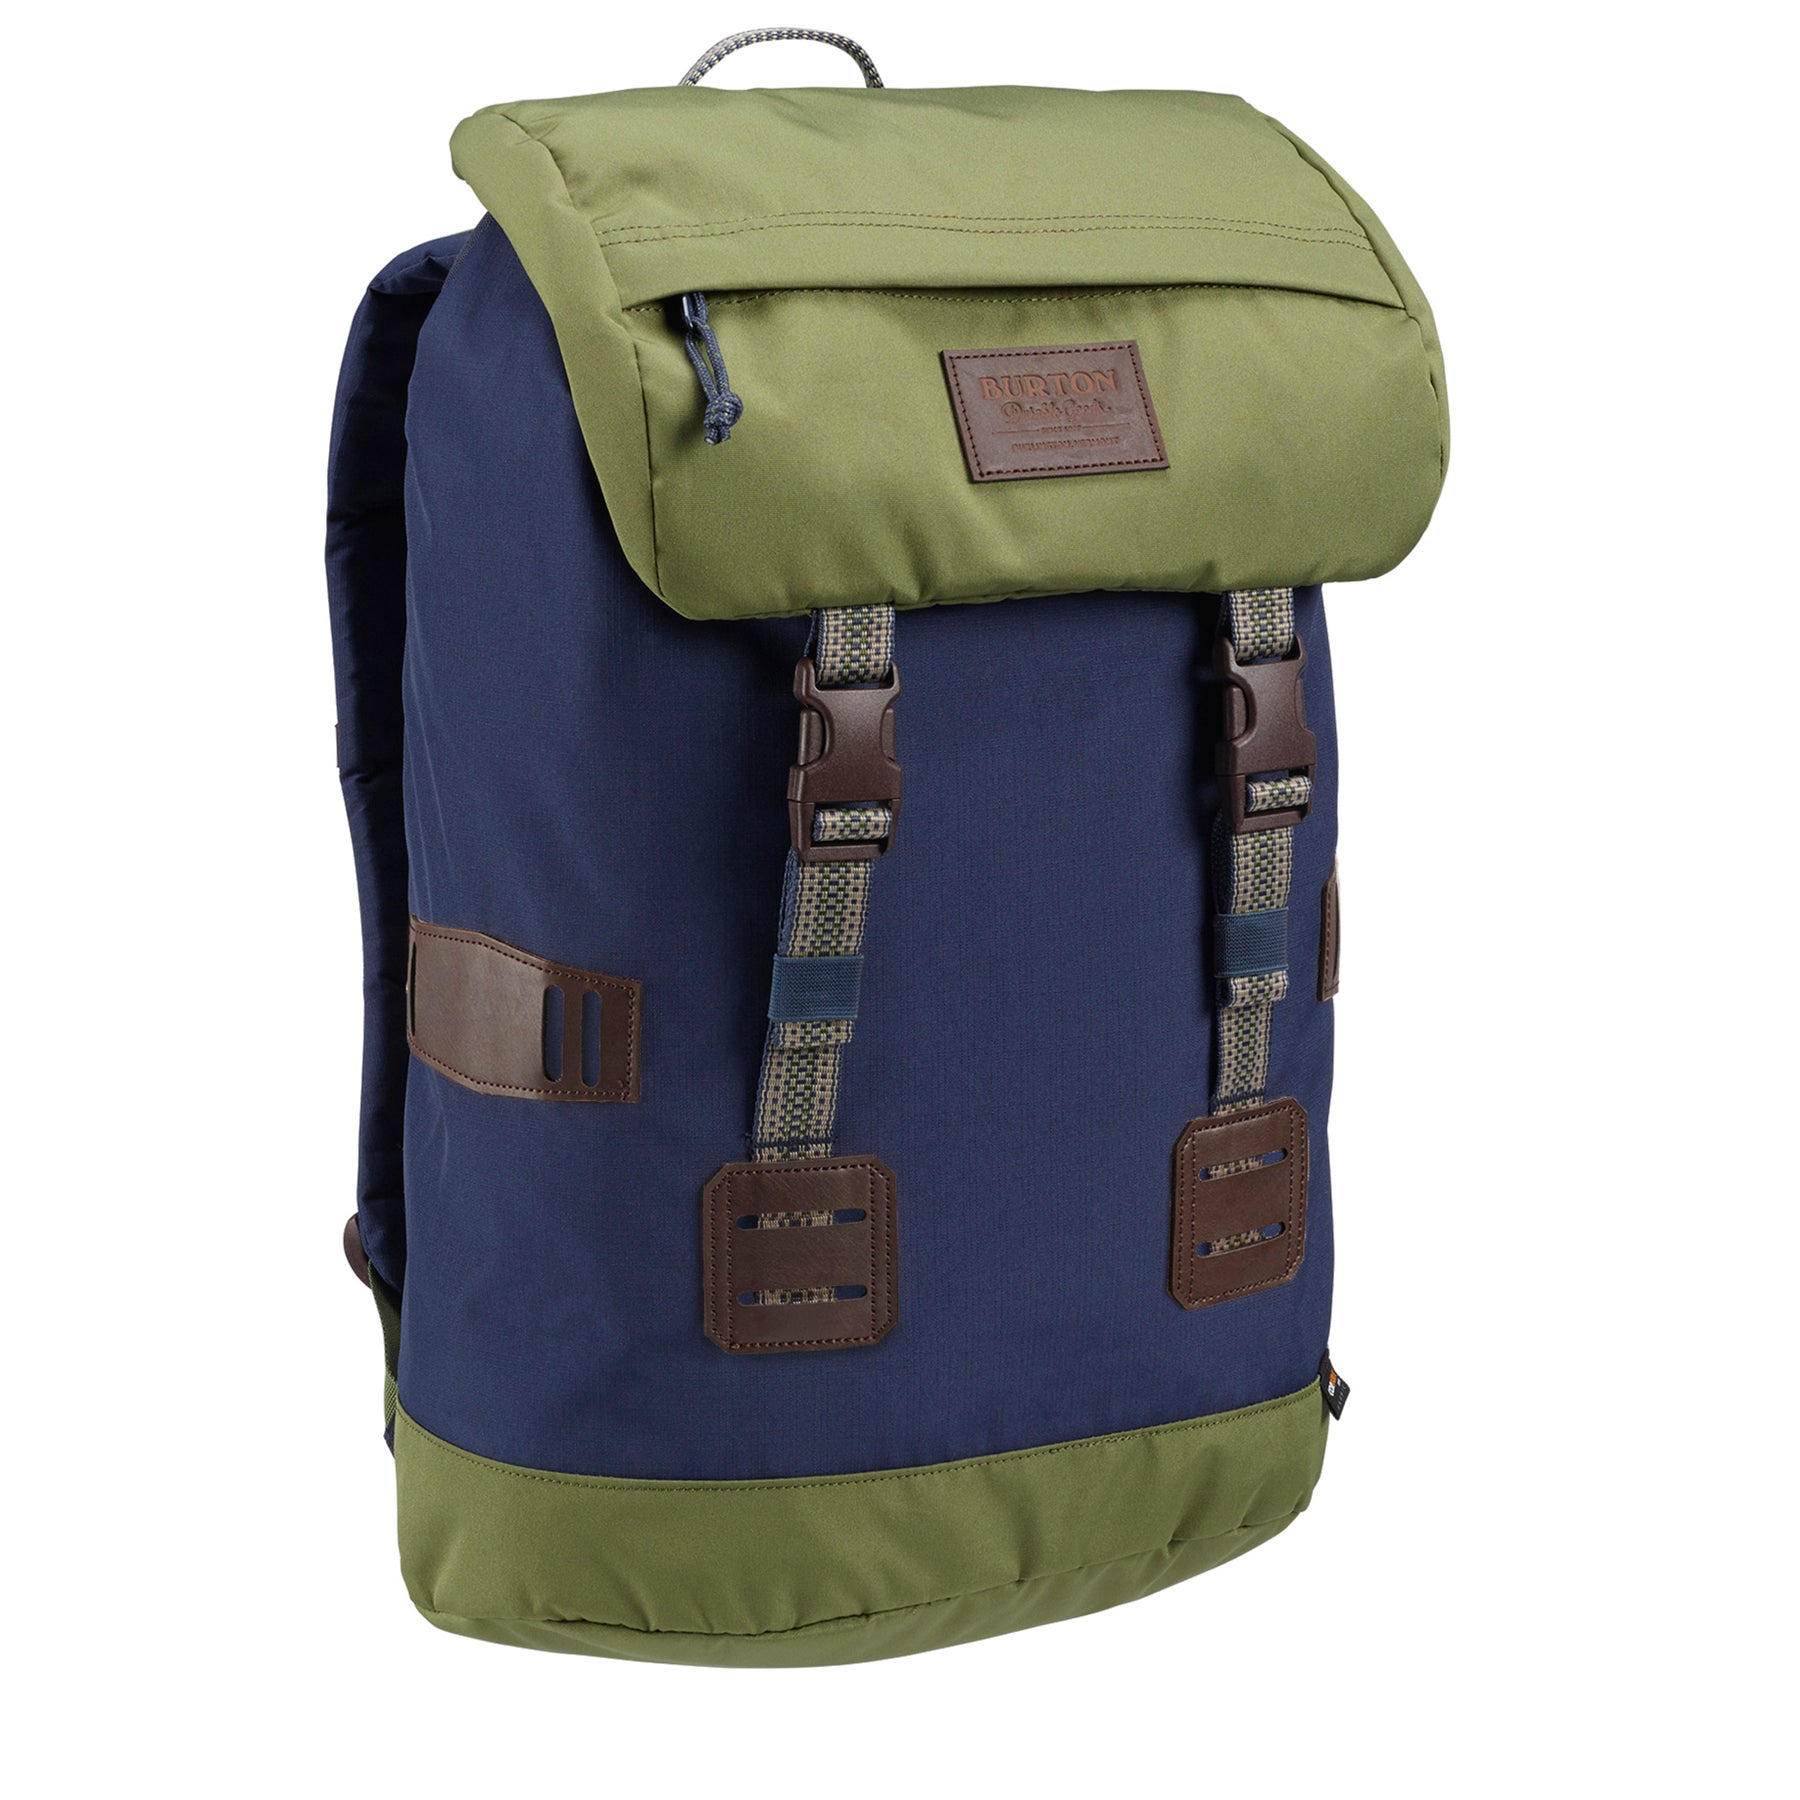 Burton Tinder Backpack - Mood Indgo Rip Crdra